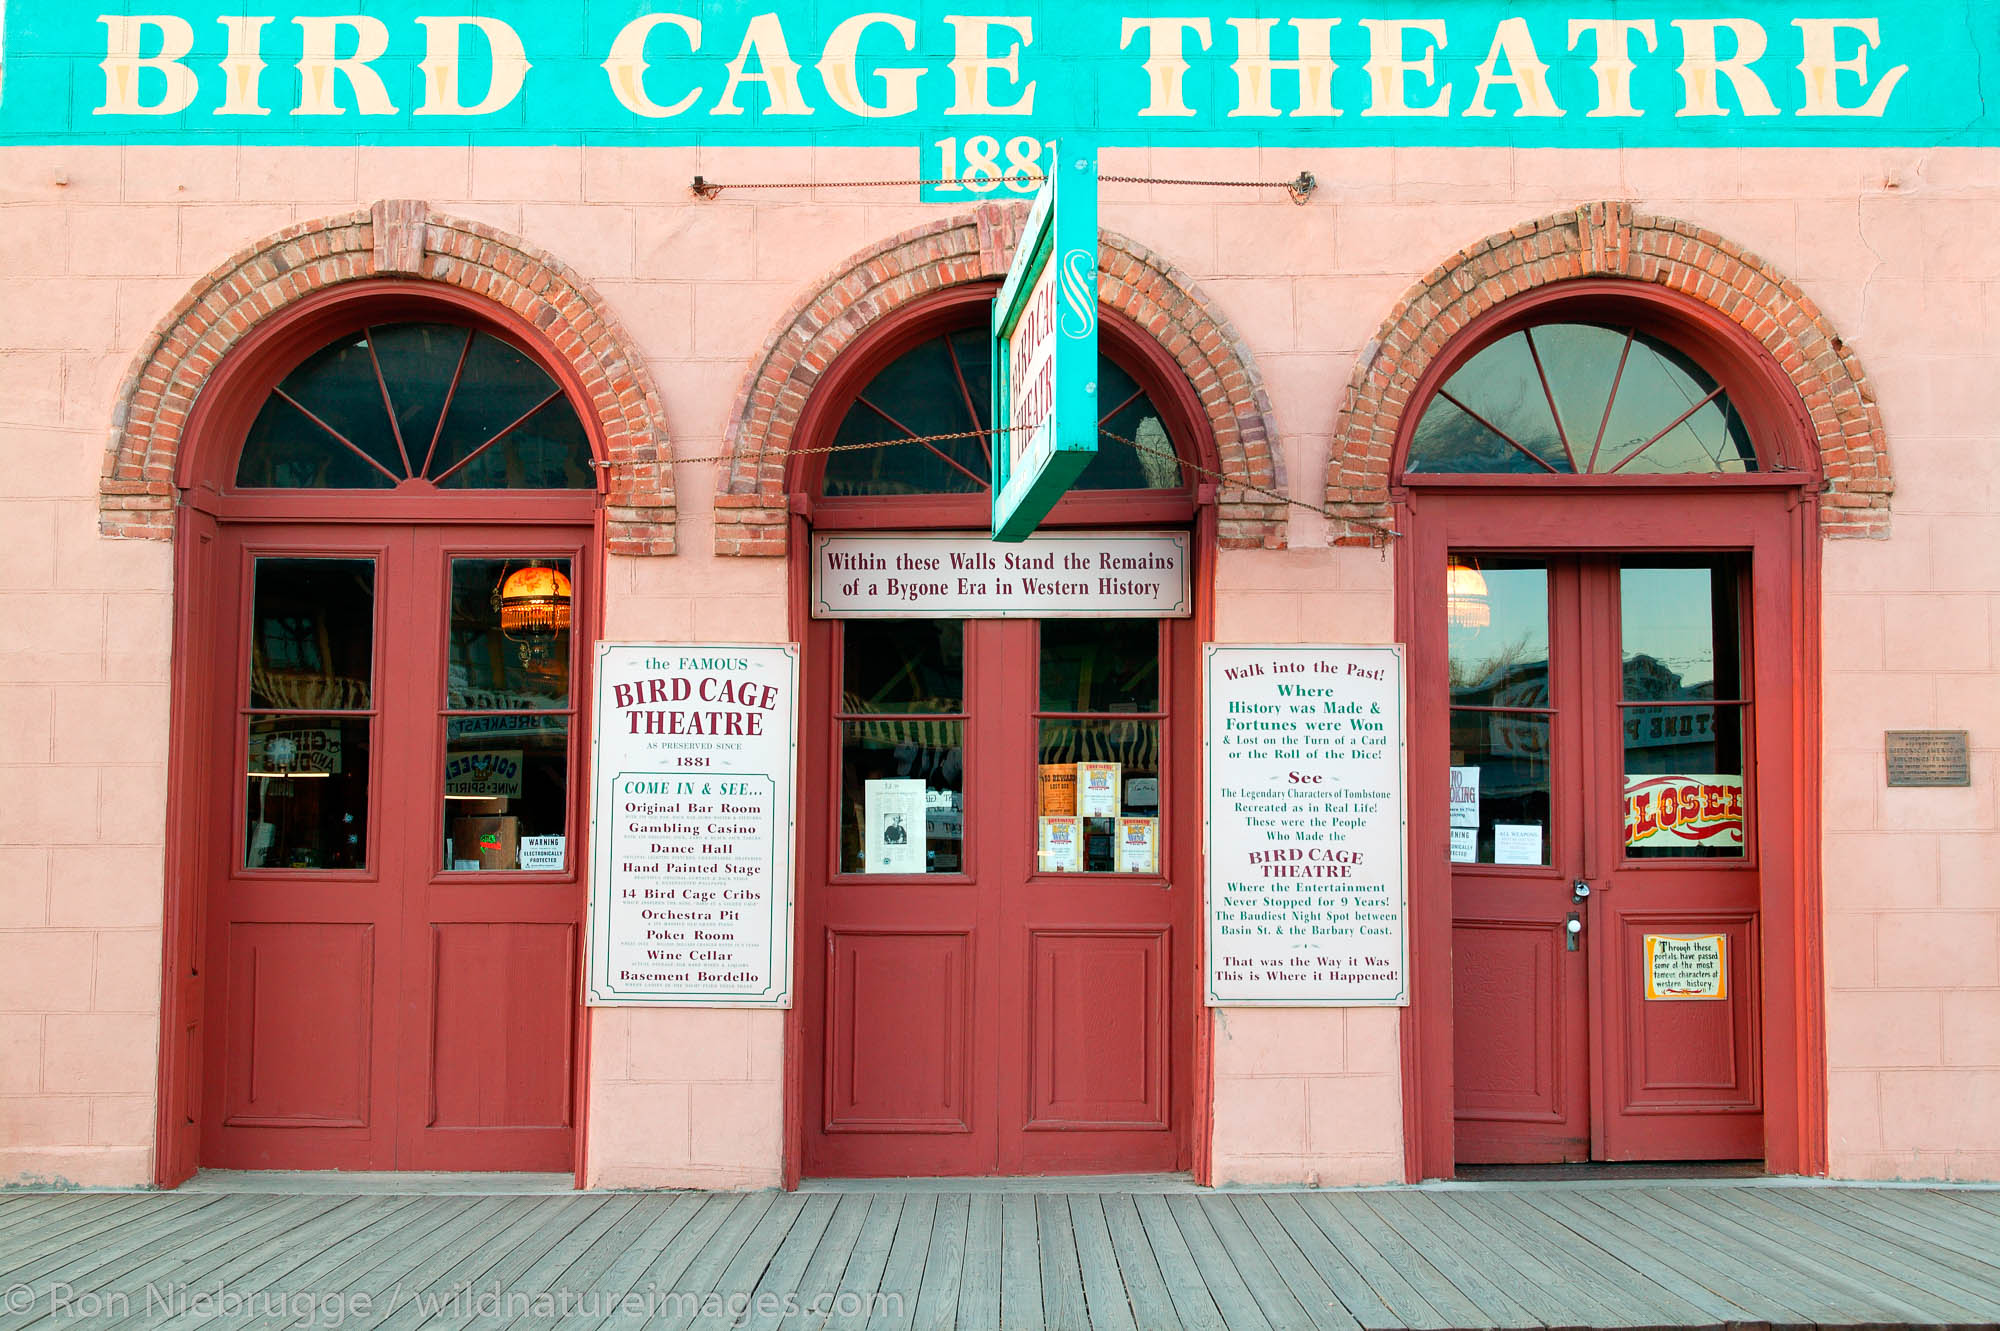 The Bird Cage Theater in Historic Tombstone Arizona, site of the OK Coral gunfight.